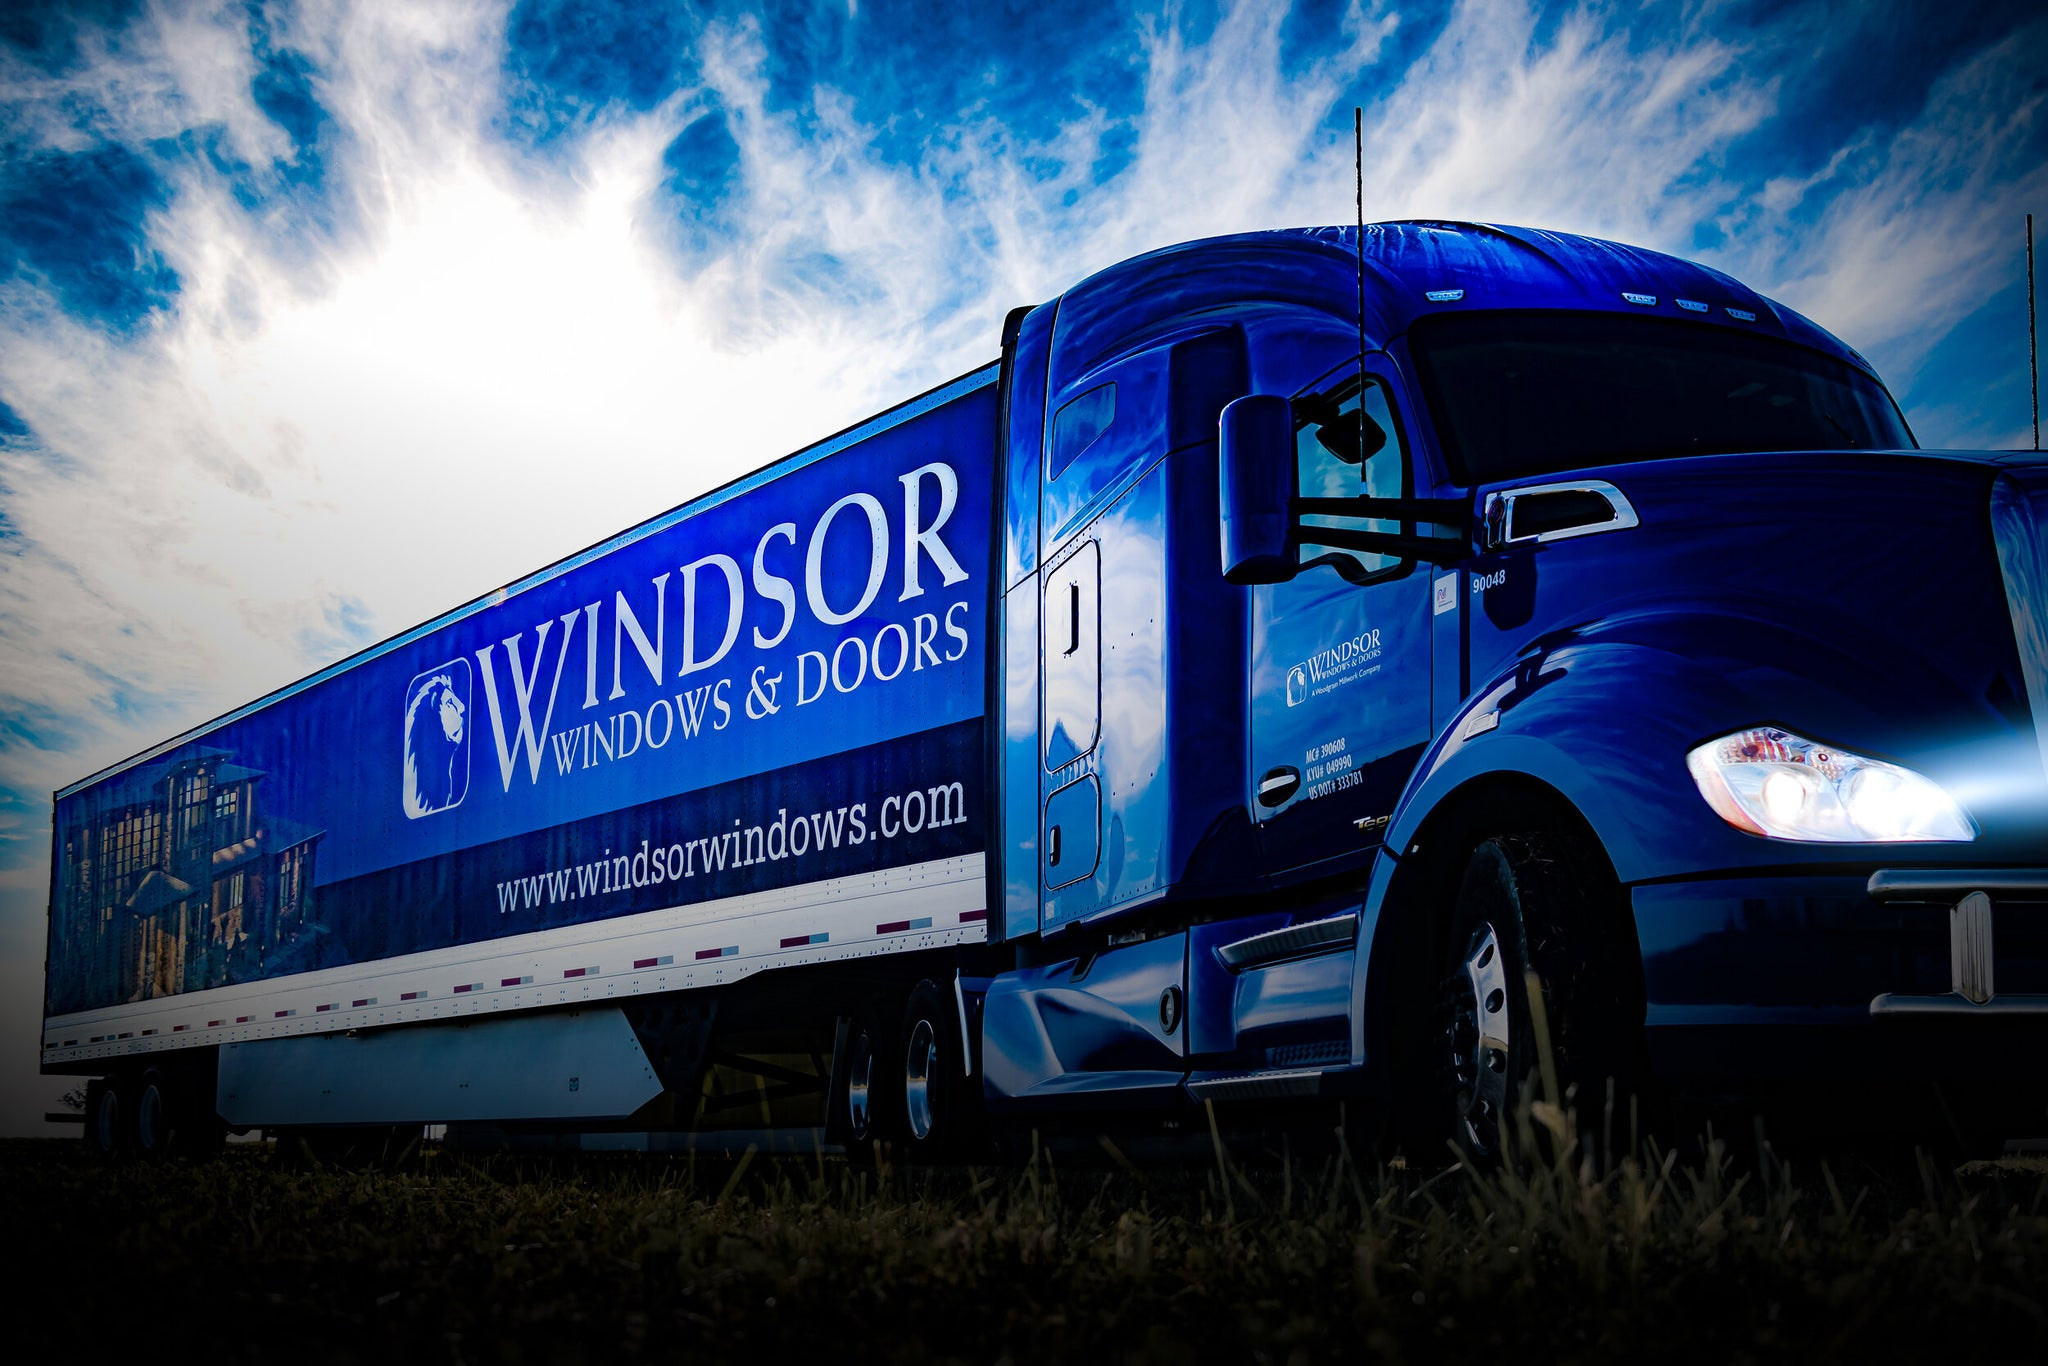 Windsor Windows and Doors new tractor and trailer with headlights on